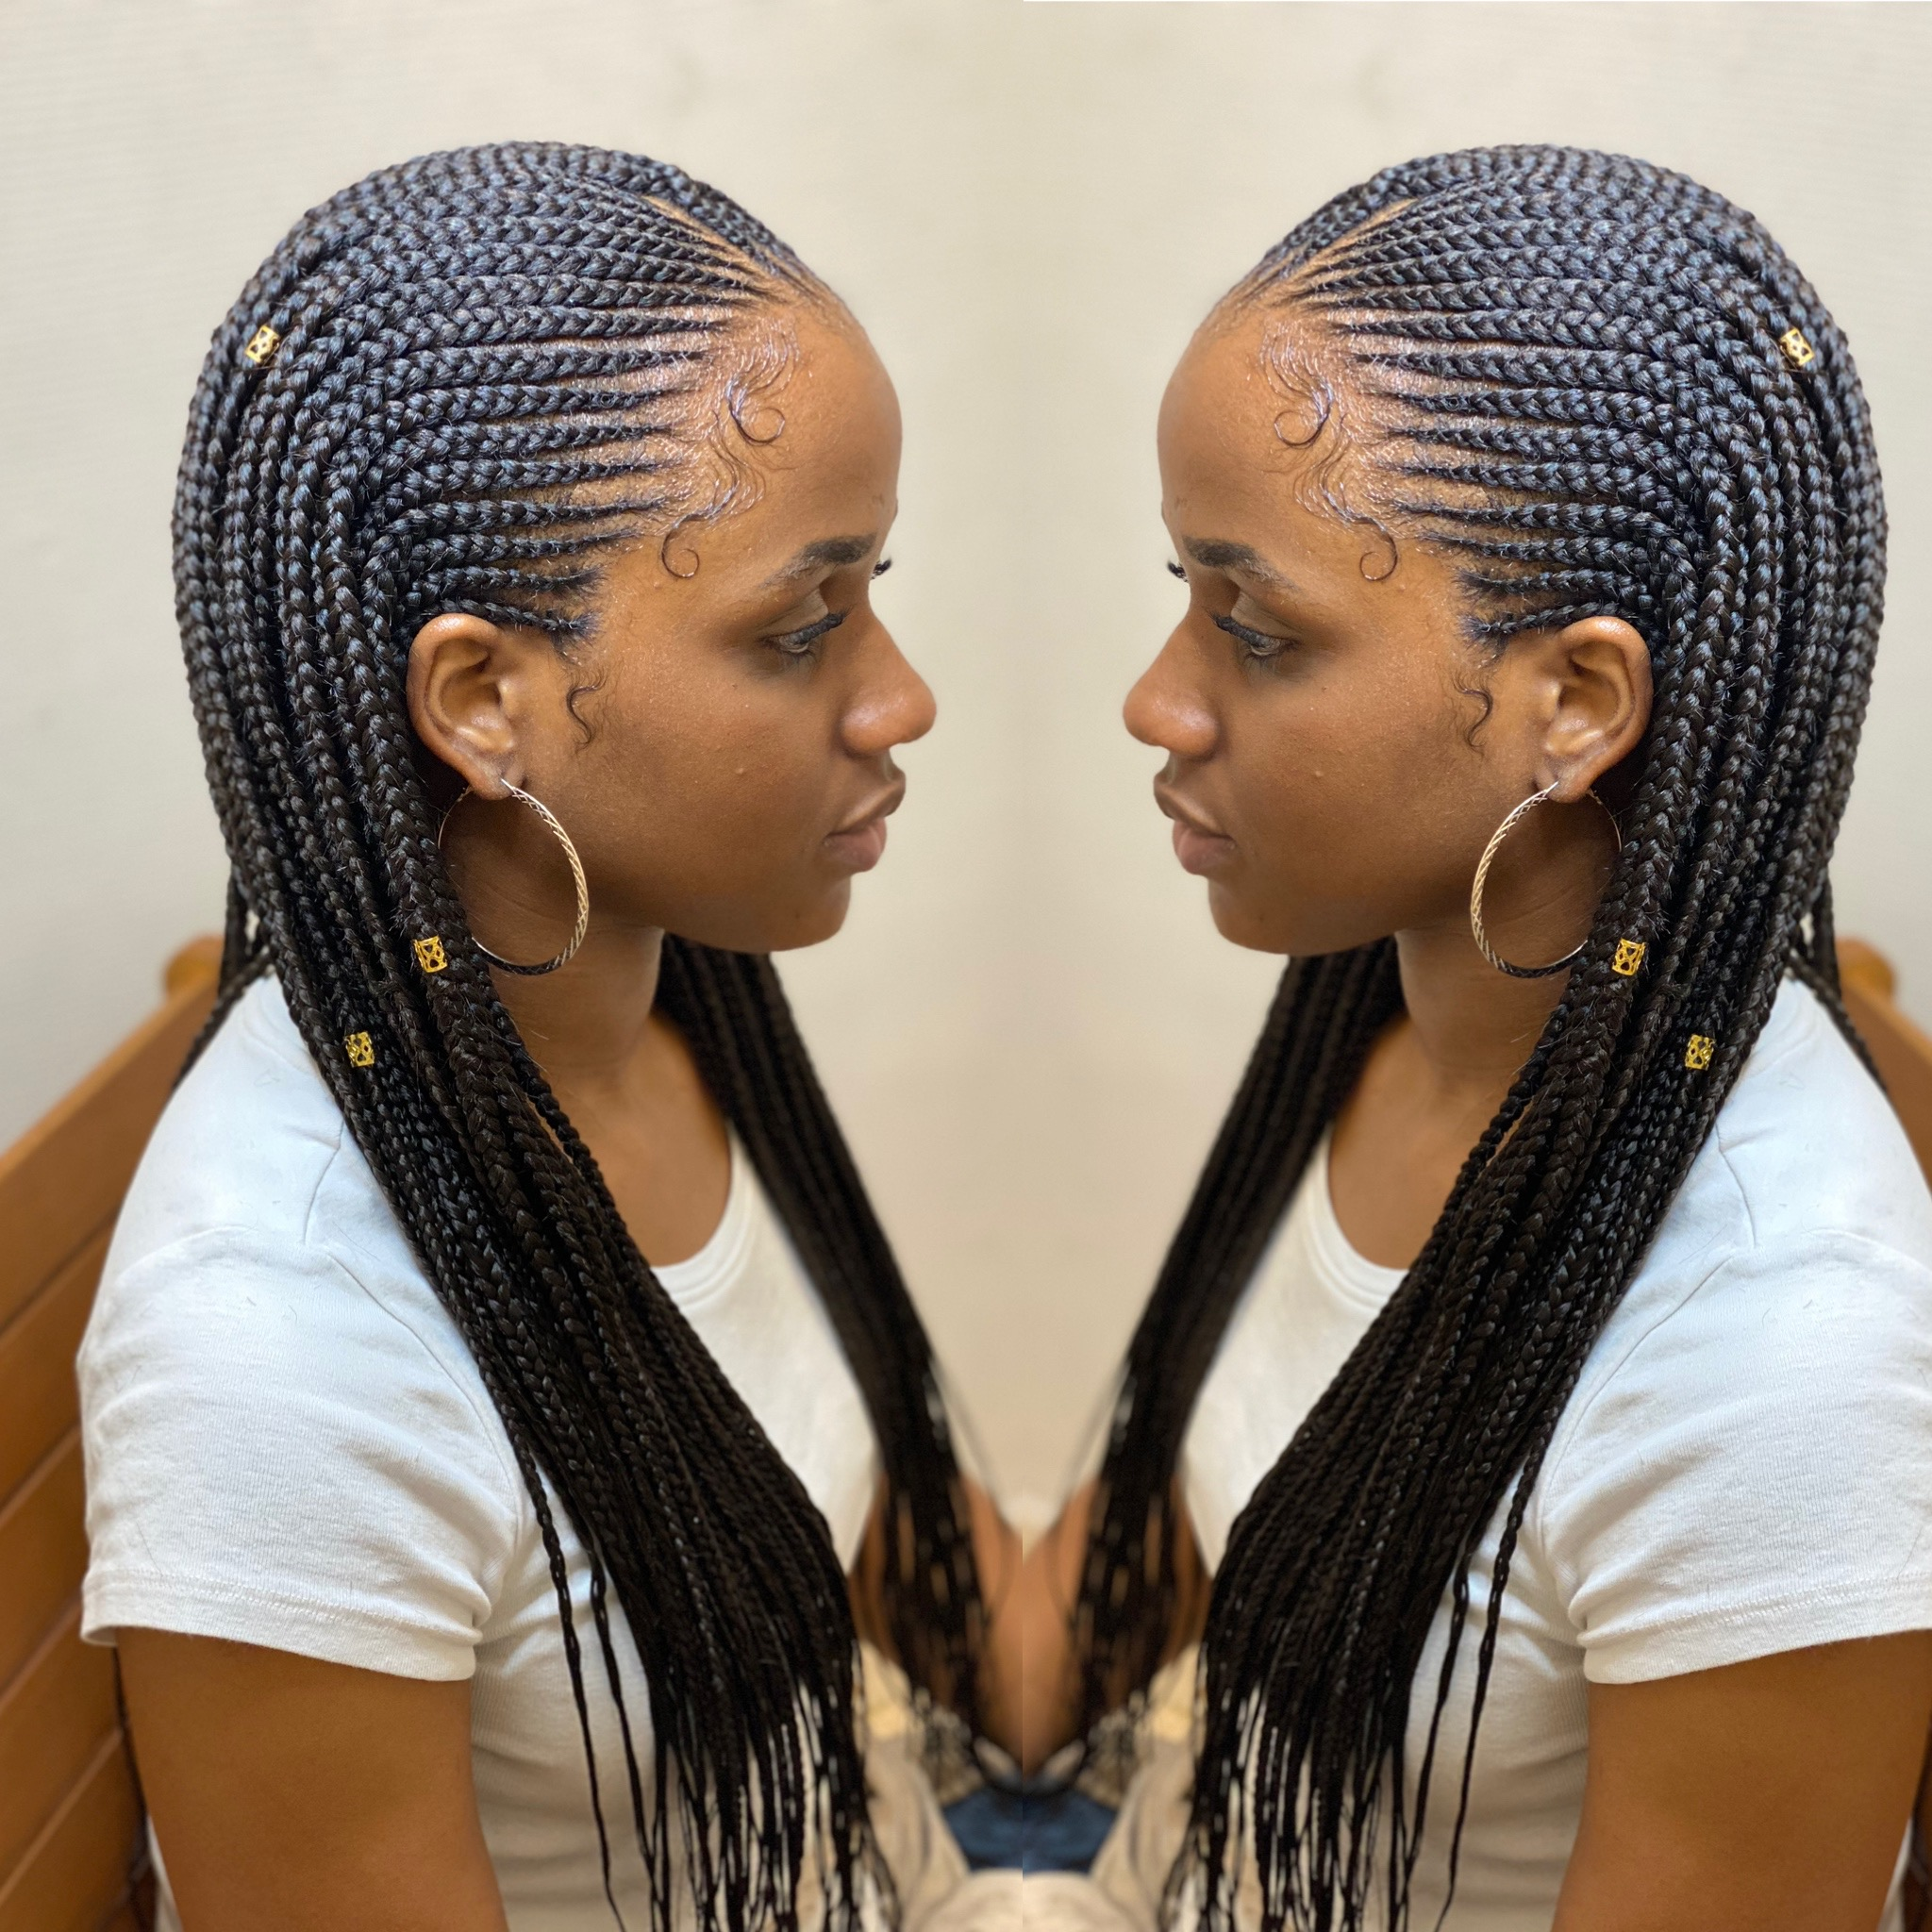 salon de coiffure afro tresse tresses box braids crochet braids vanilles tissages paris 75 77 78 91 92 93 94 95 NEXSBUCR